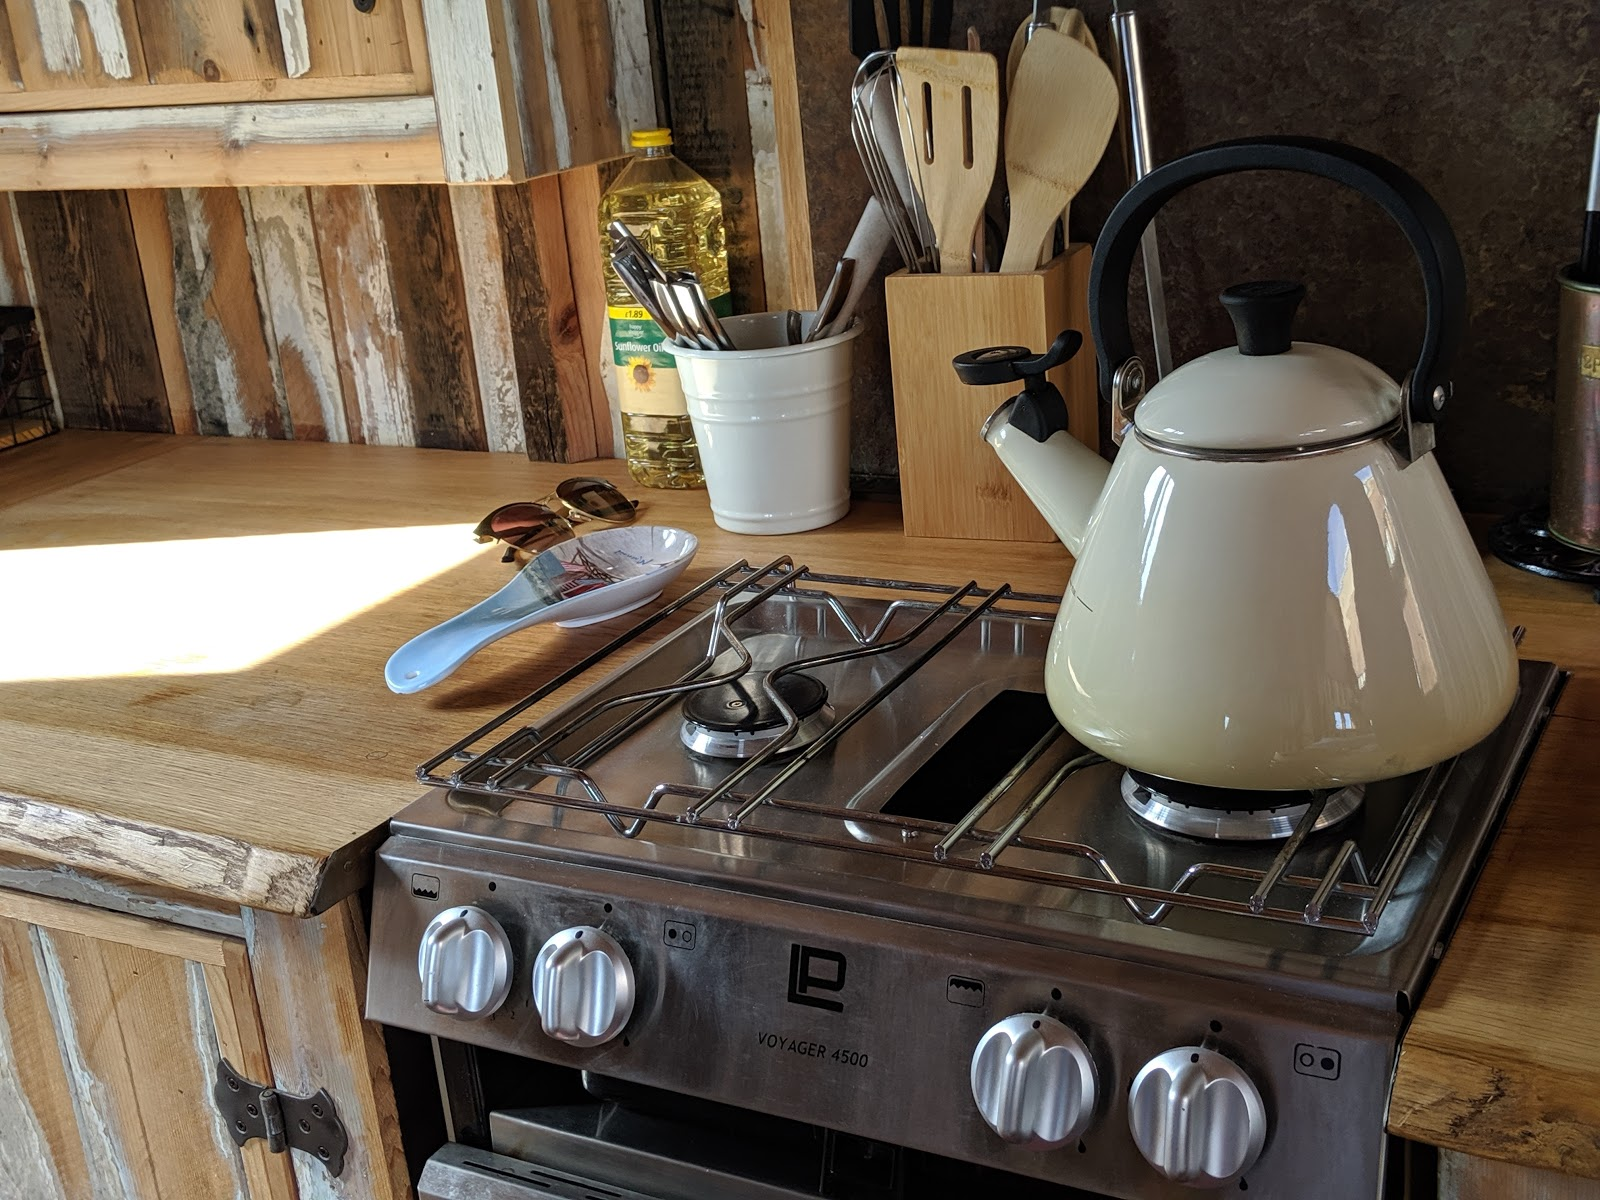 Shepherd's Retreats Beadnell Review - Dog-friendly Glamping in Northumberland - kitchen and cooker